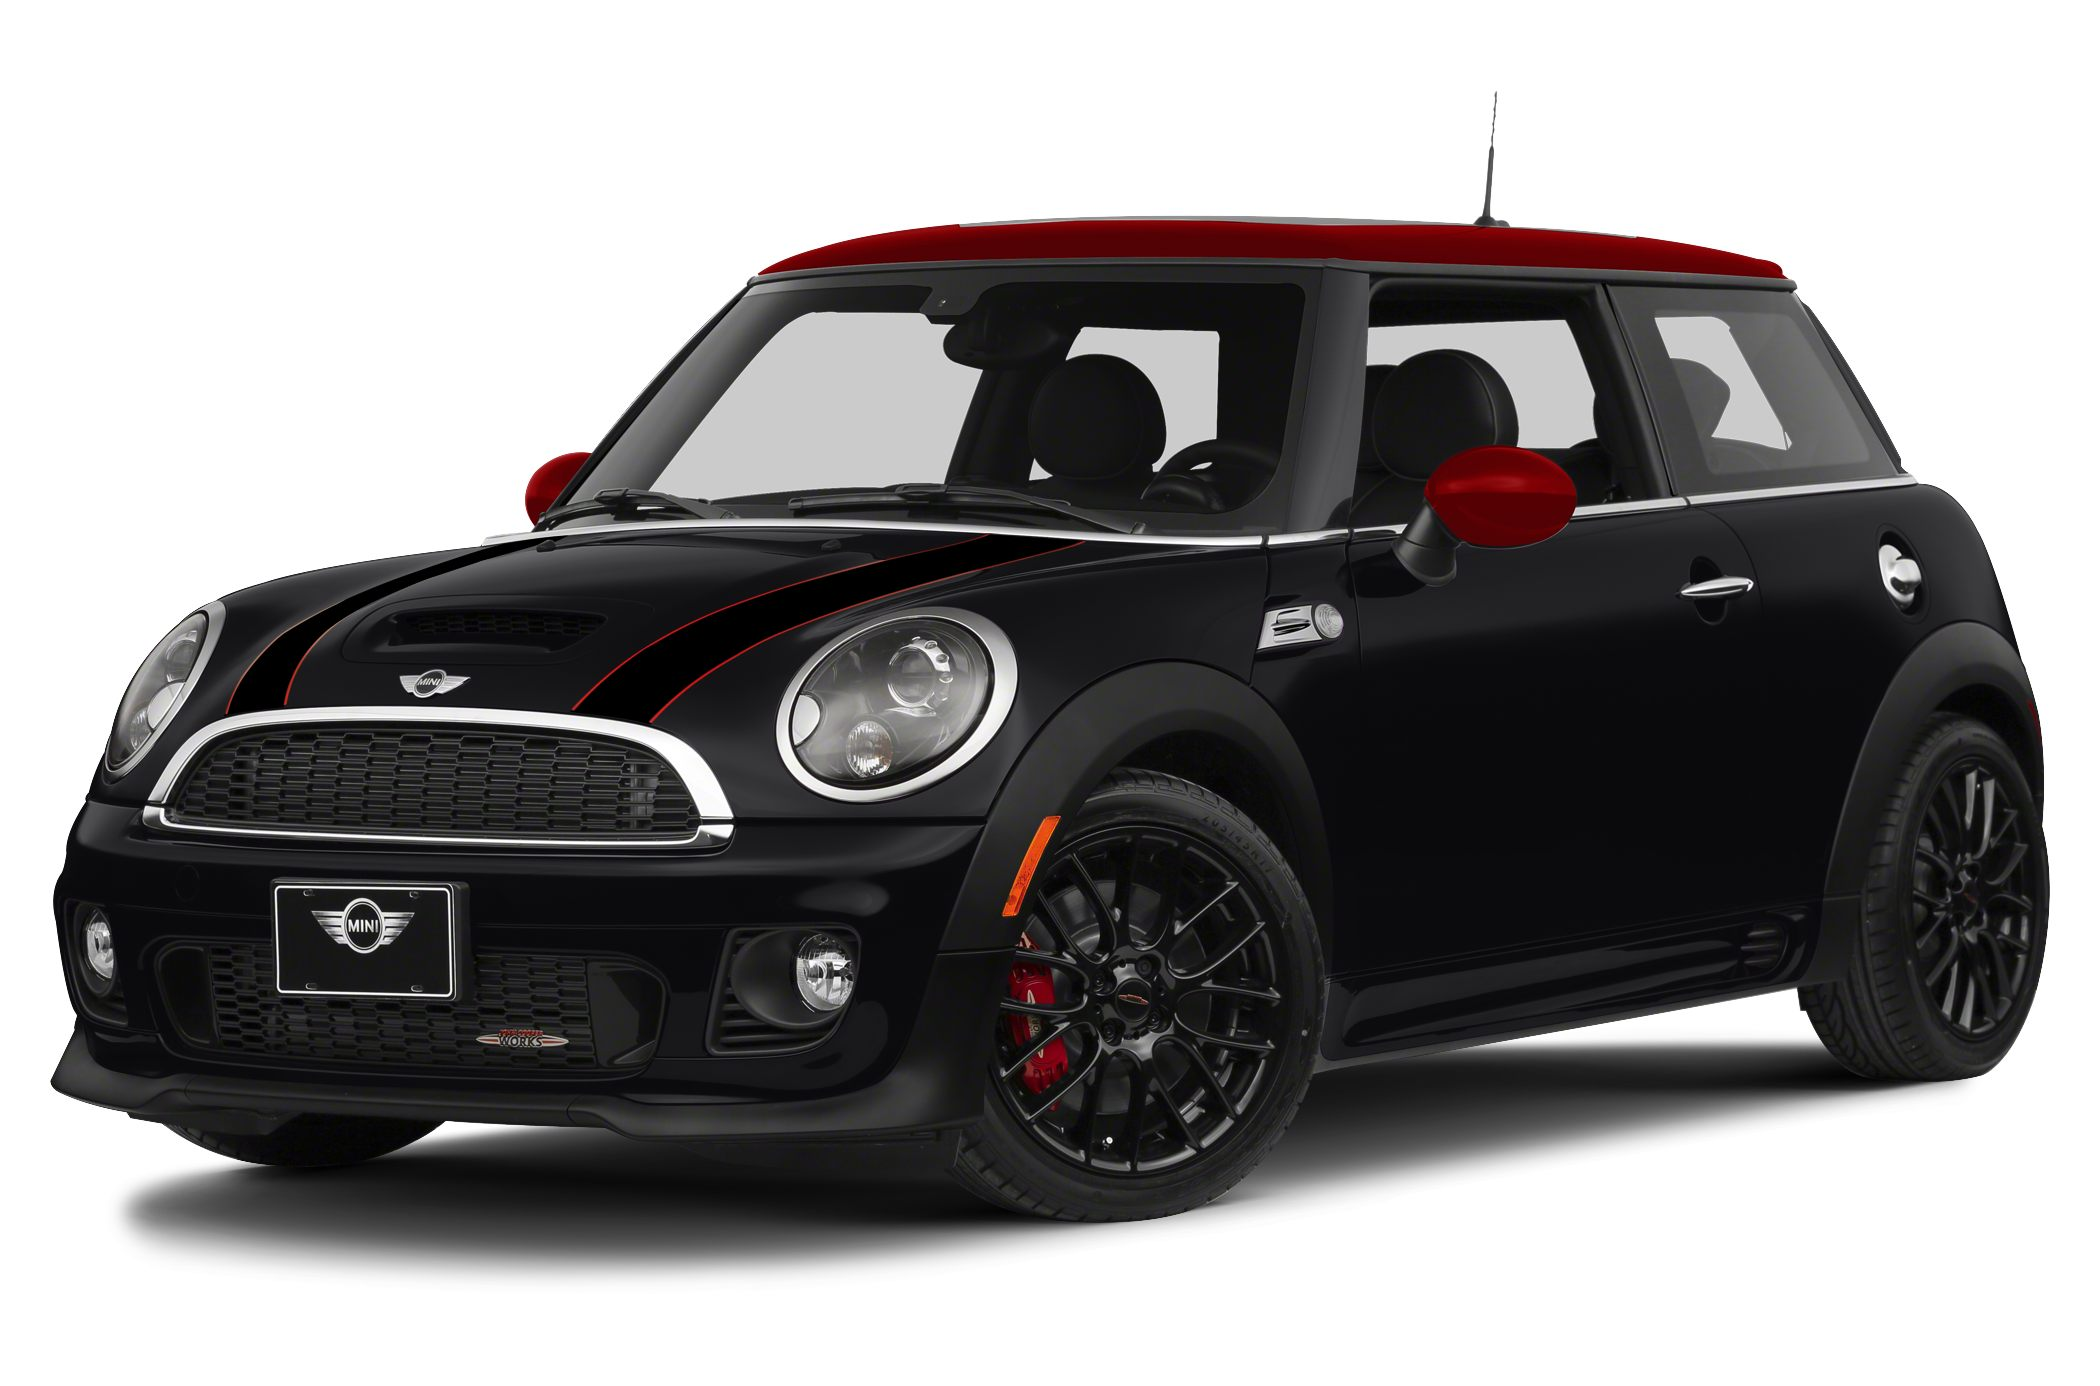 2012 MINI John Cooper Works